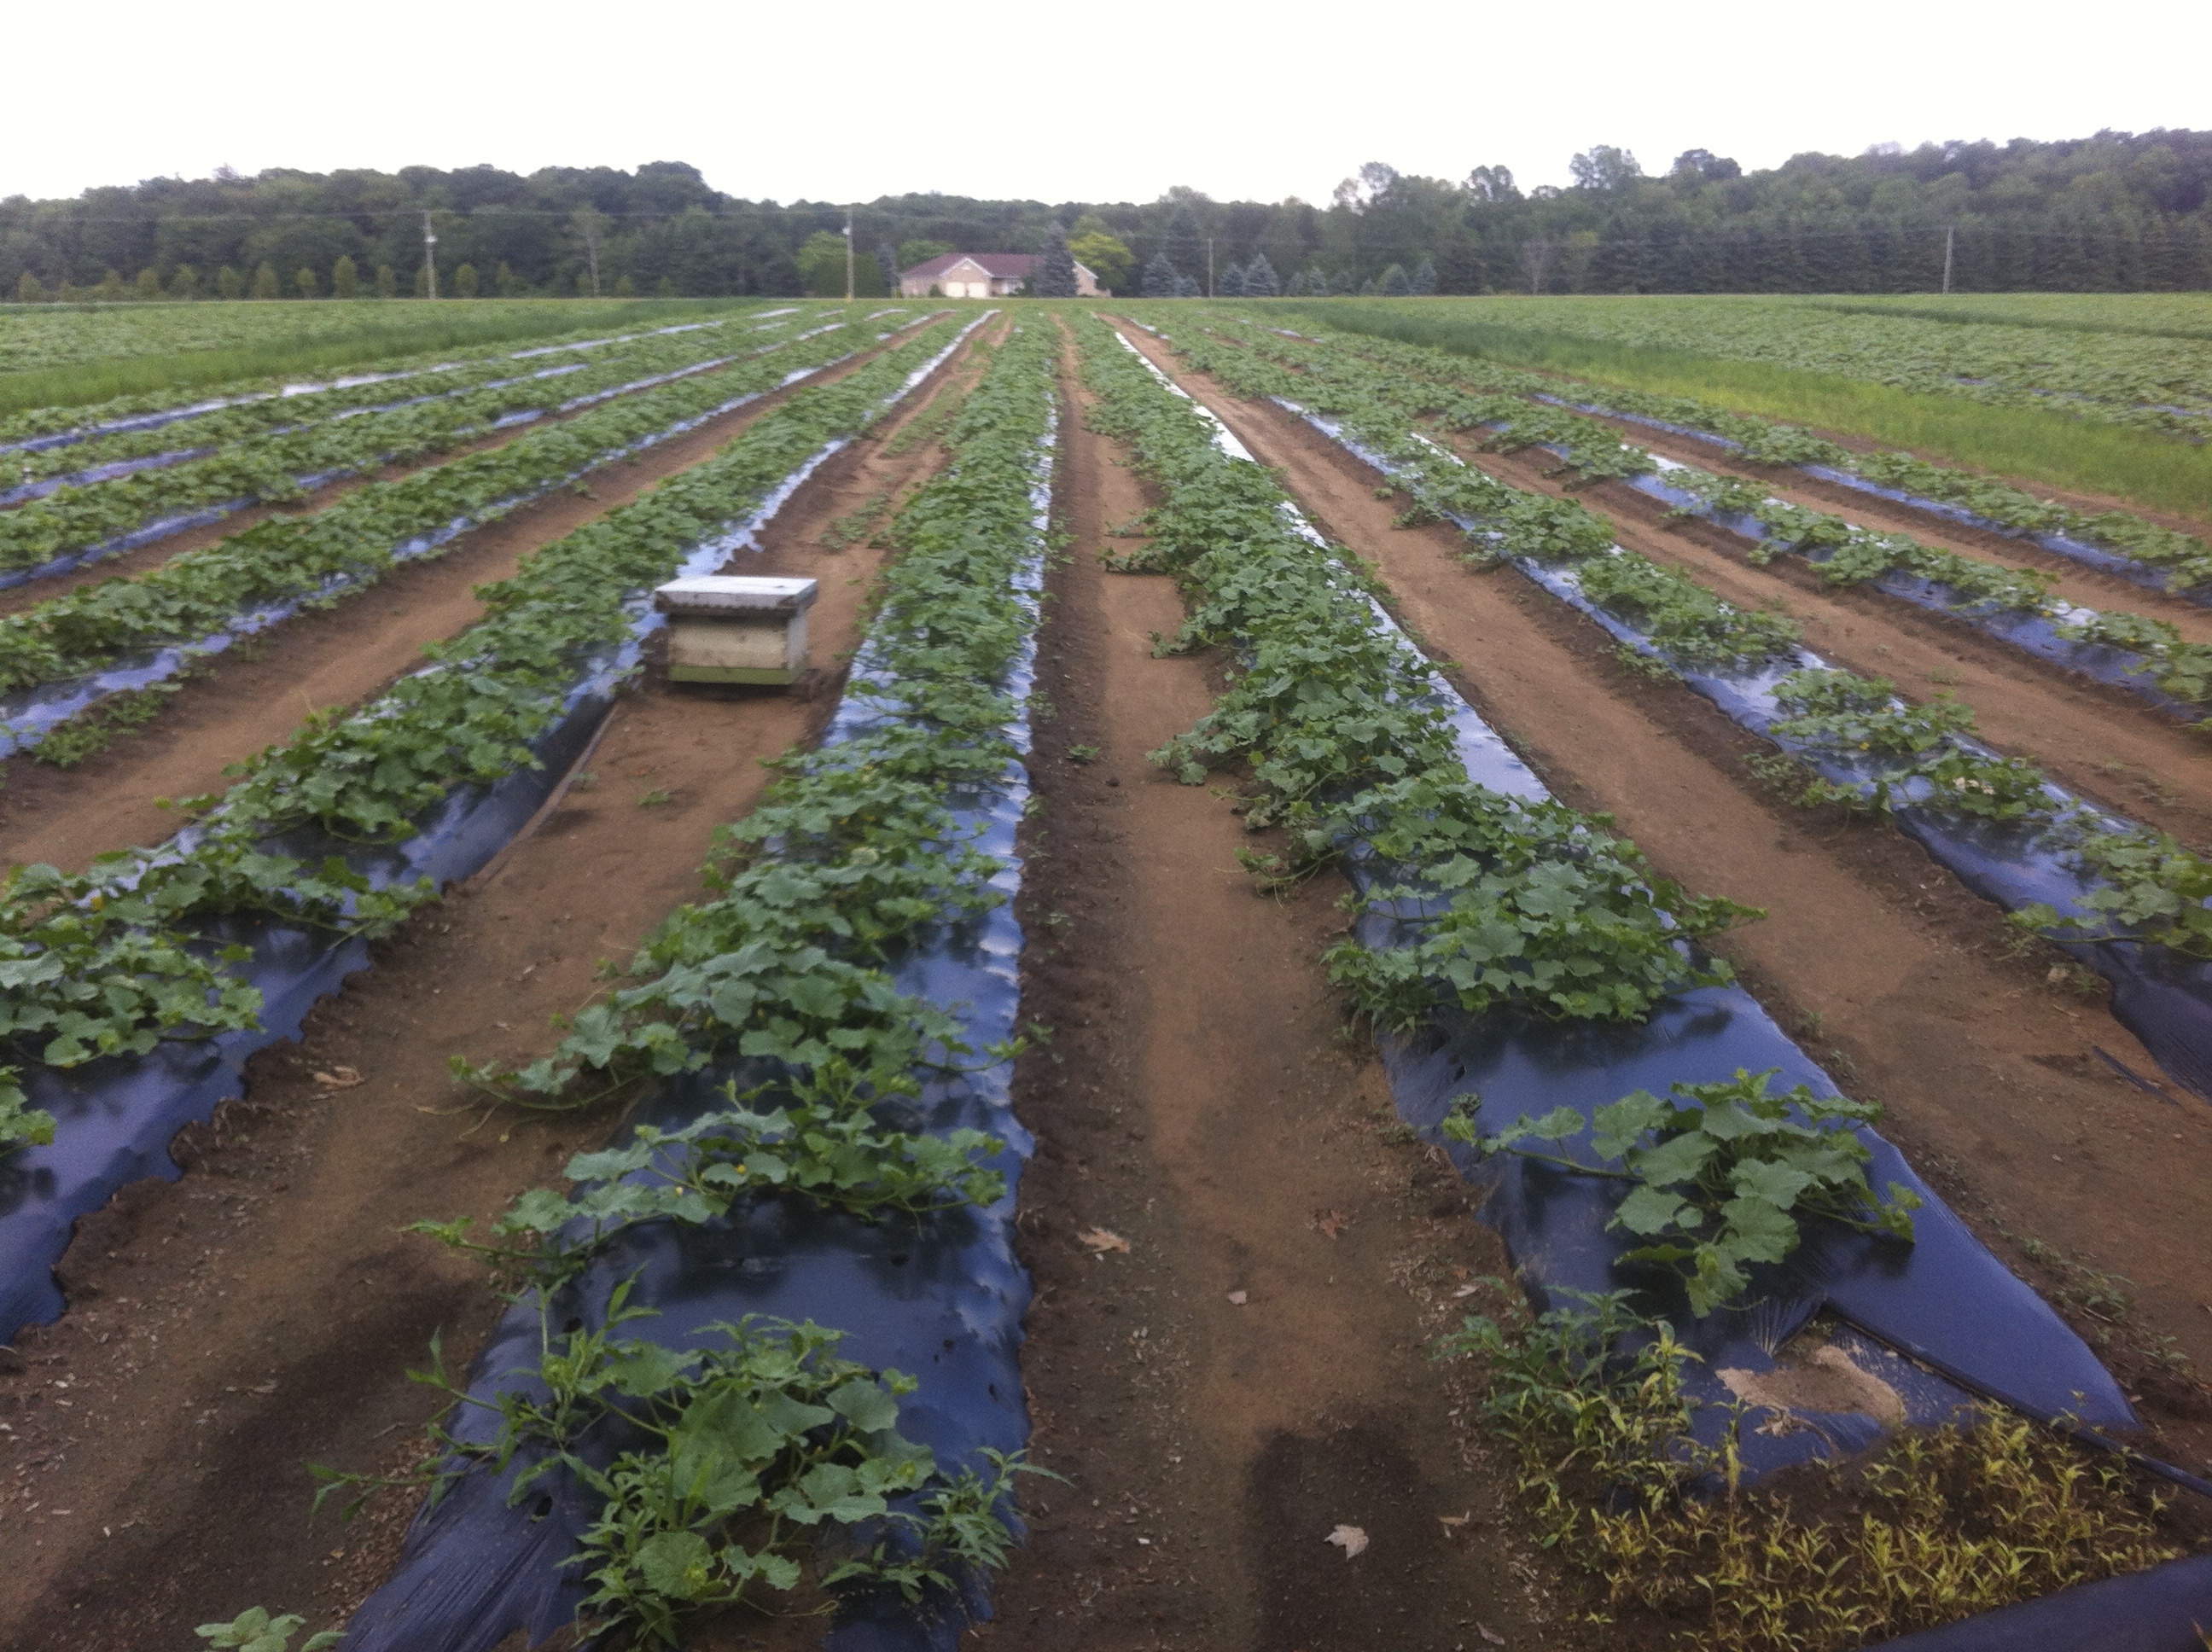 Farm to table crops